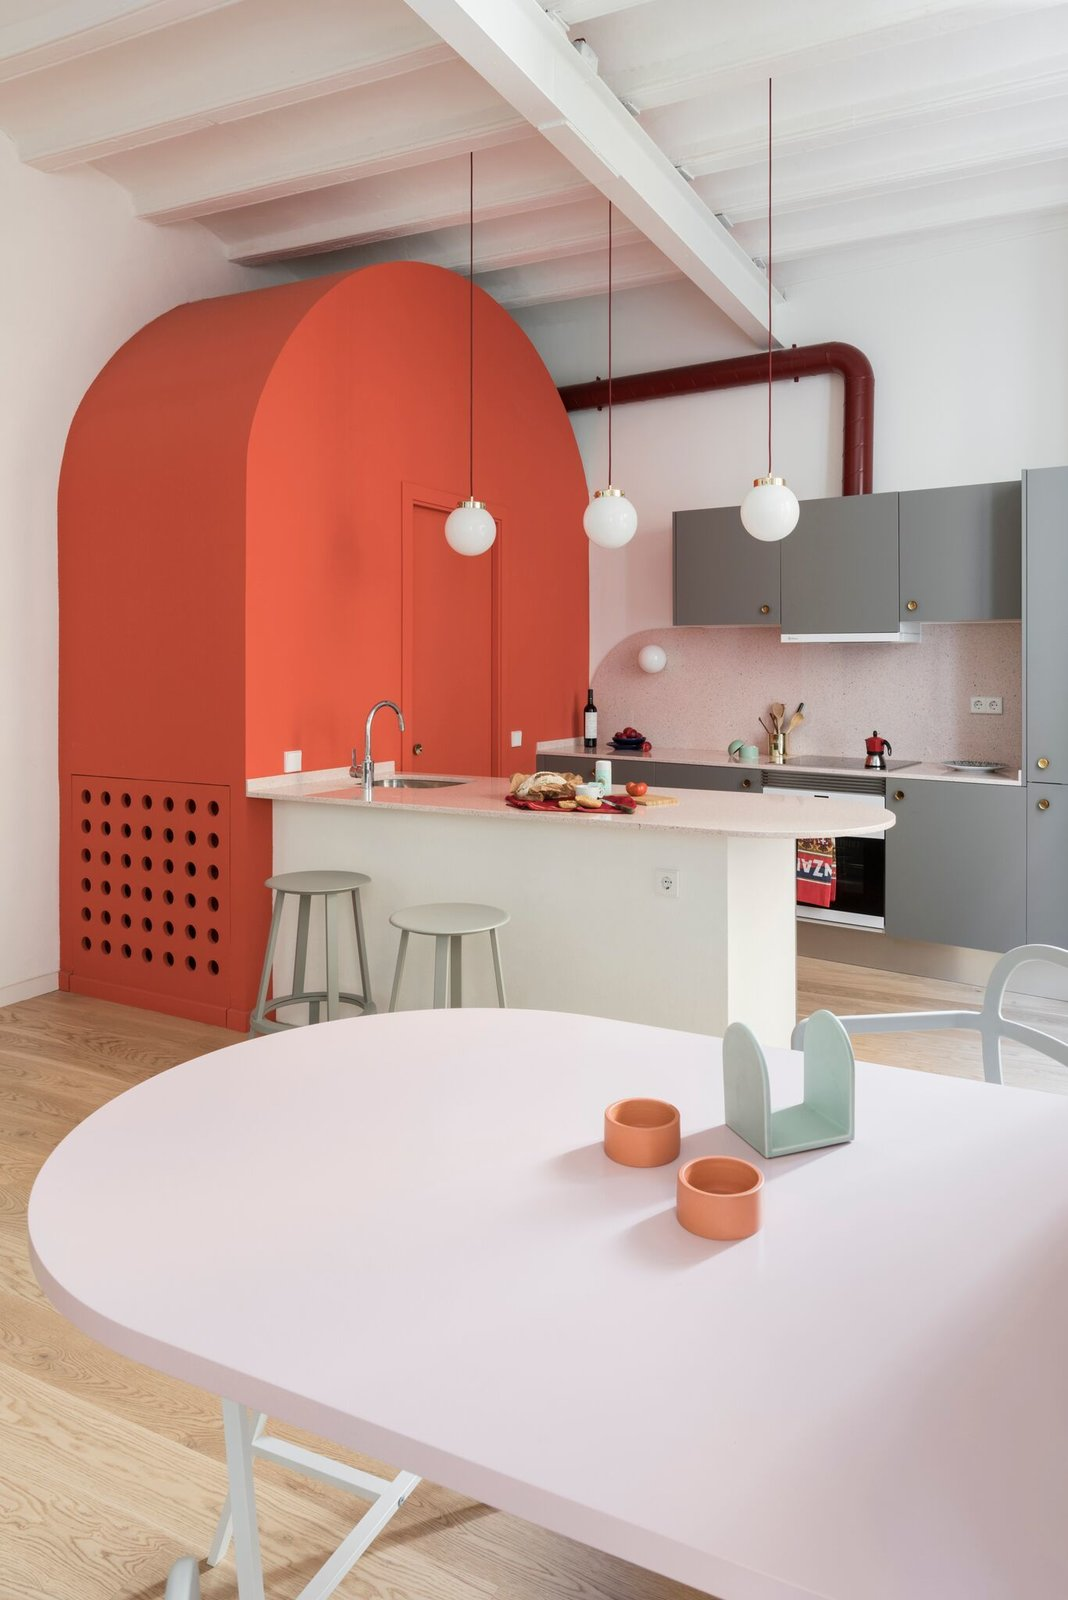 Dining Room, Bar, Pendant Lighting, Light Hardwood Floor, Stools, and Wall Lighting Revolver stools by HAY complement the home's colorful interior.  Photo 16 of 26 in Before & After: An Ancient Barcelona Apartment Gets a Colorful, Chic Makeover